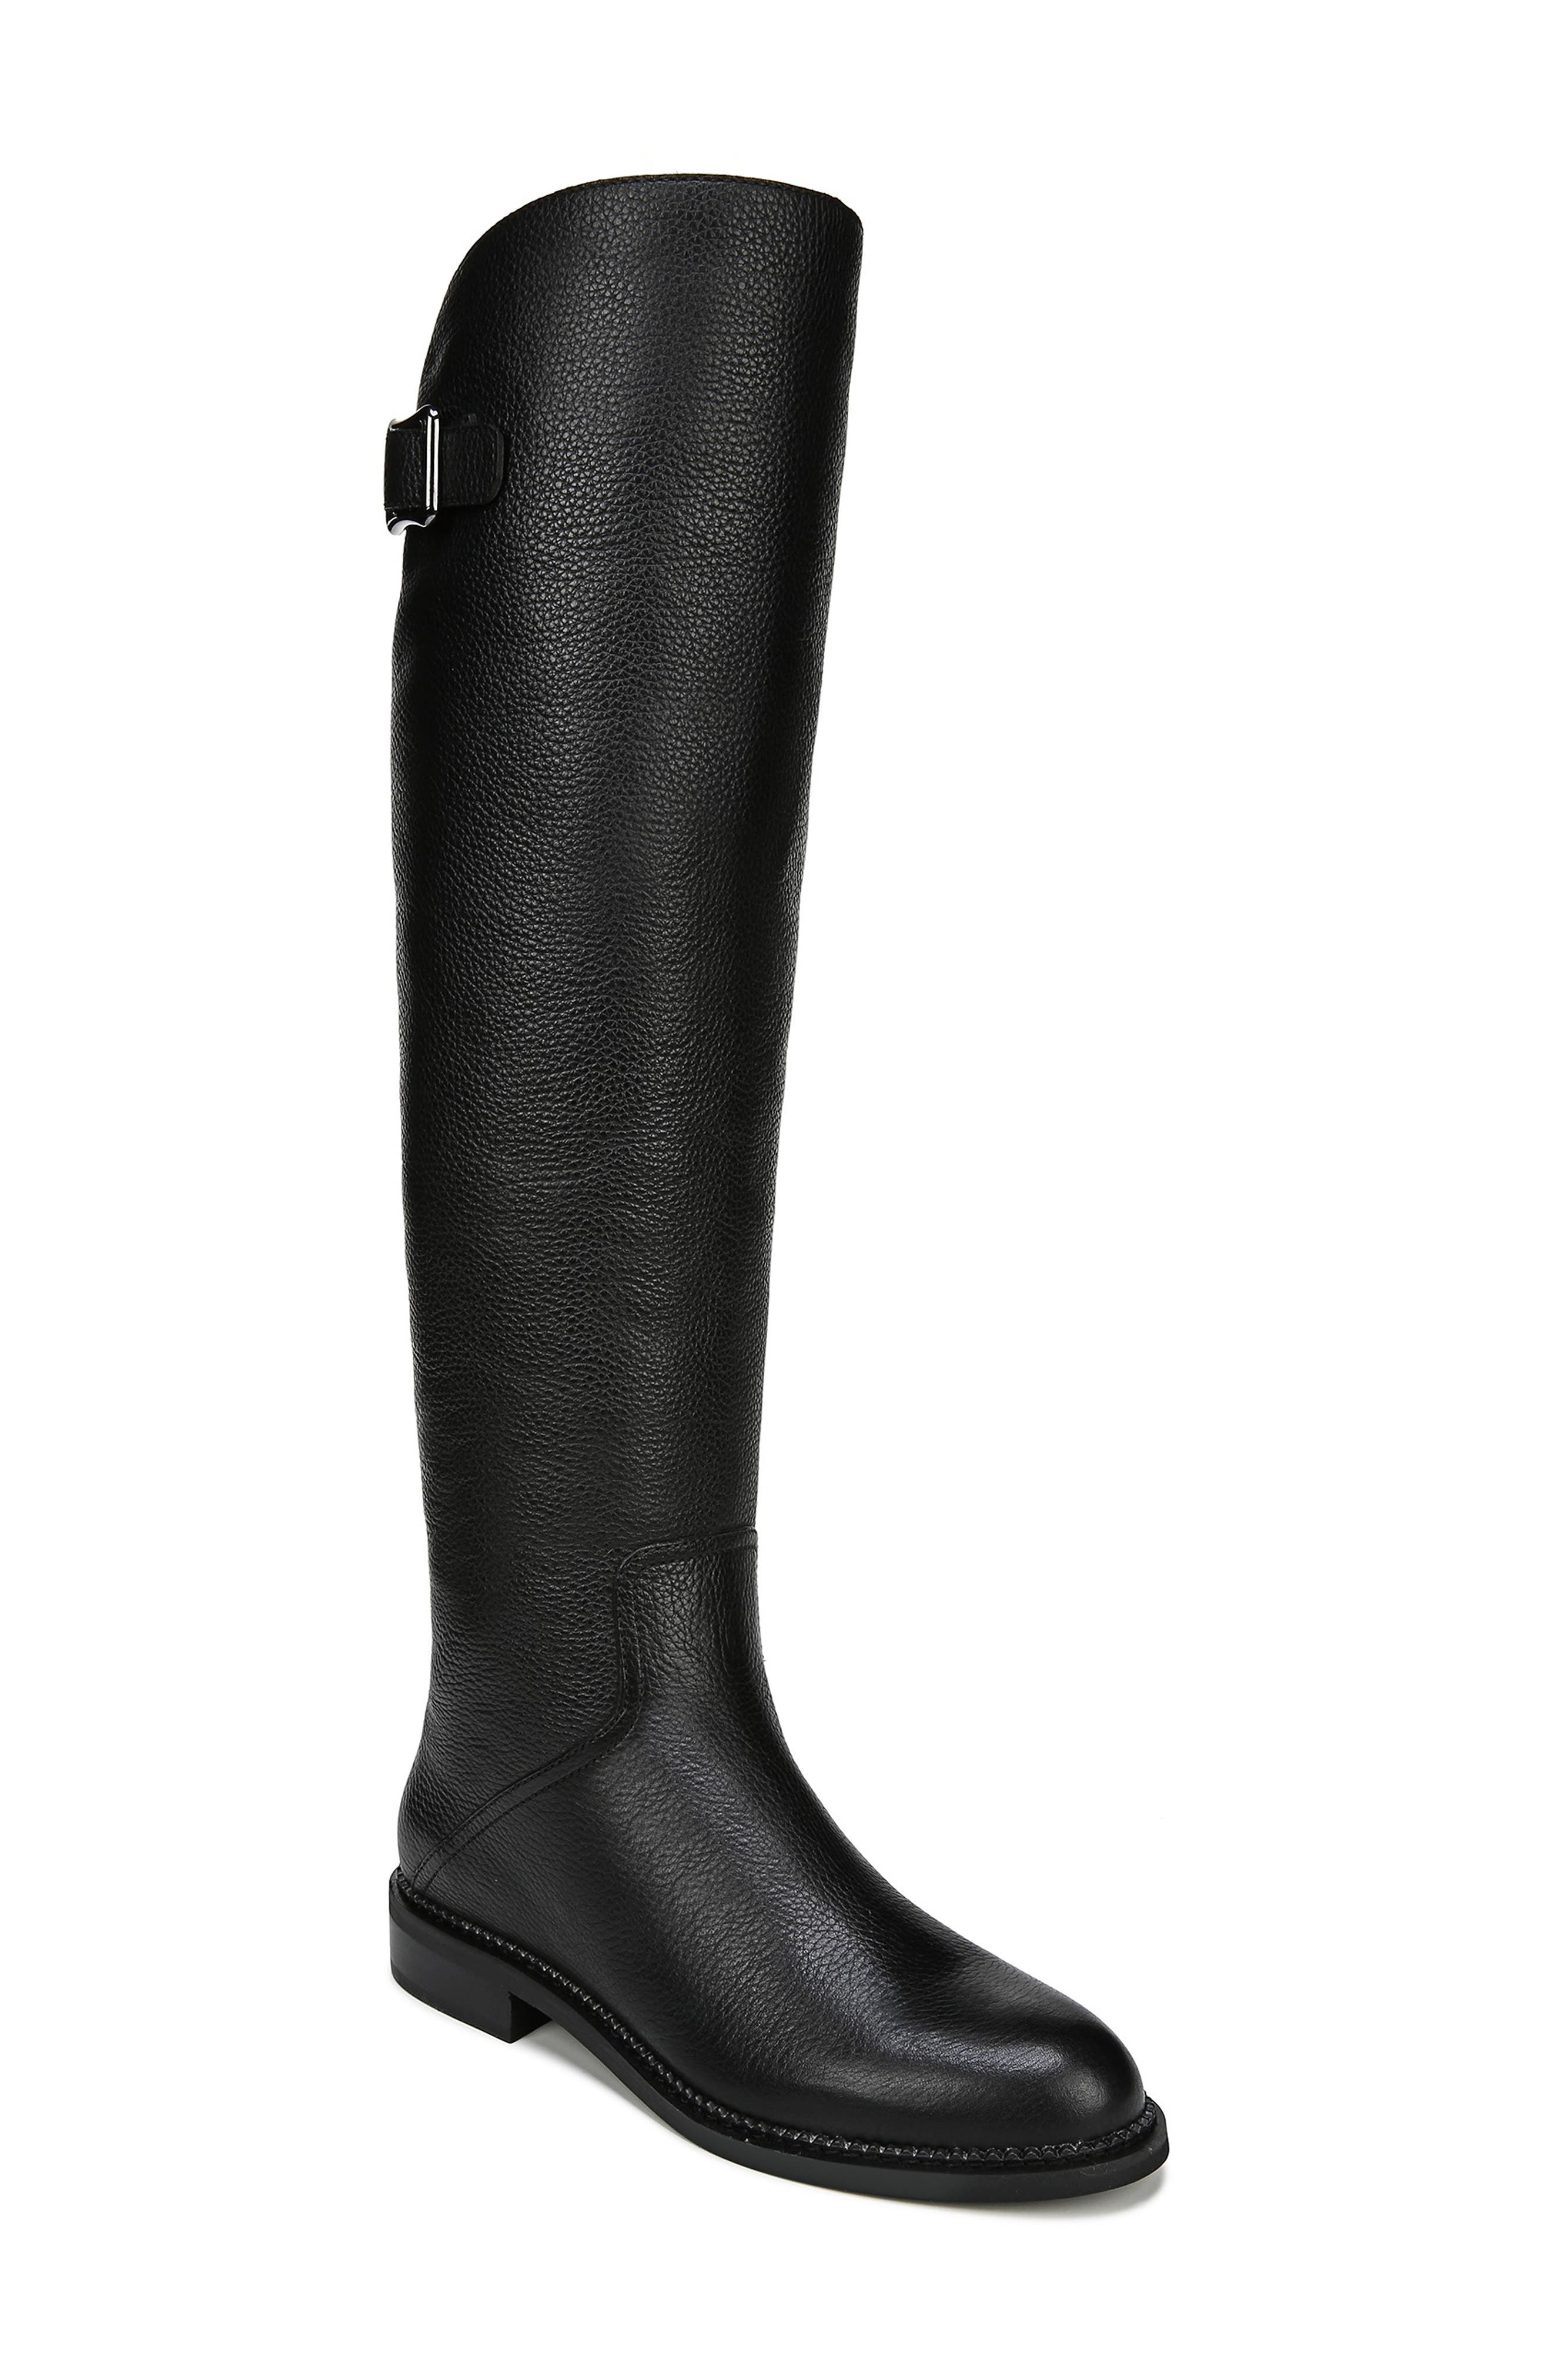 Halloway Knee High Boot,                             Main thumbnail 1, color,                             BLACK LEATHER